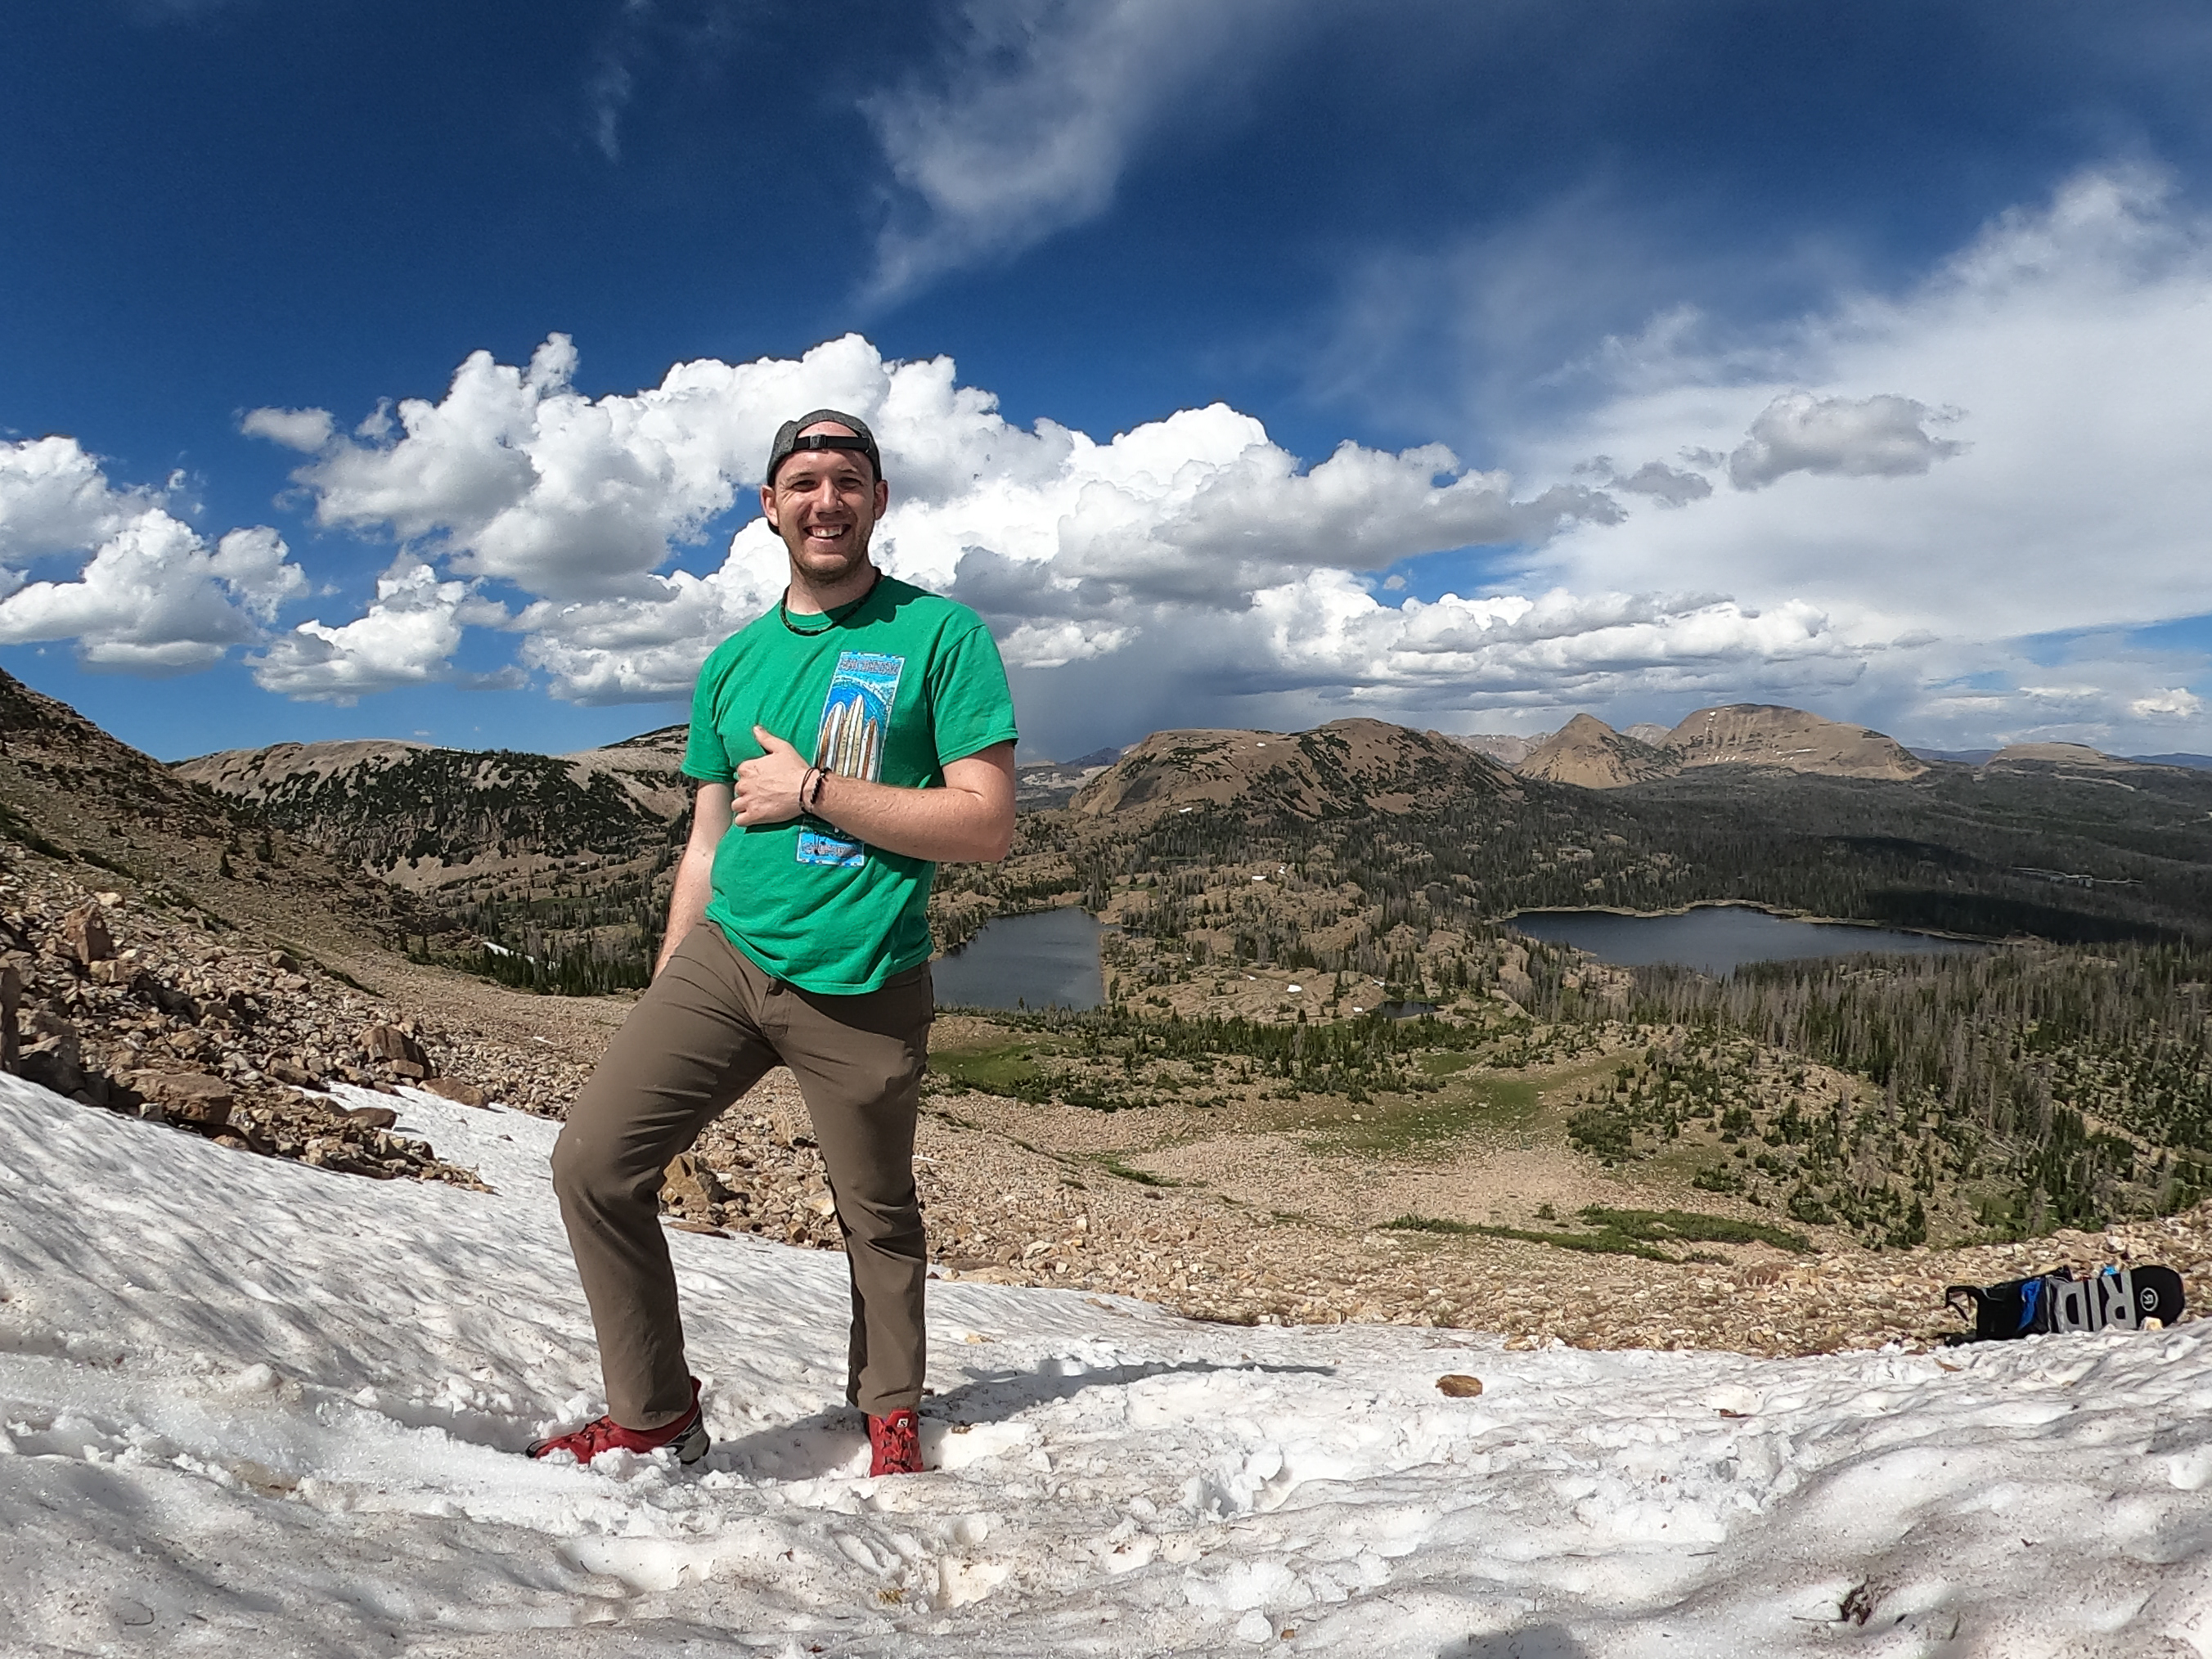 Trent standing on the glacier he plans to snowboard